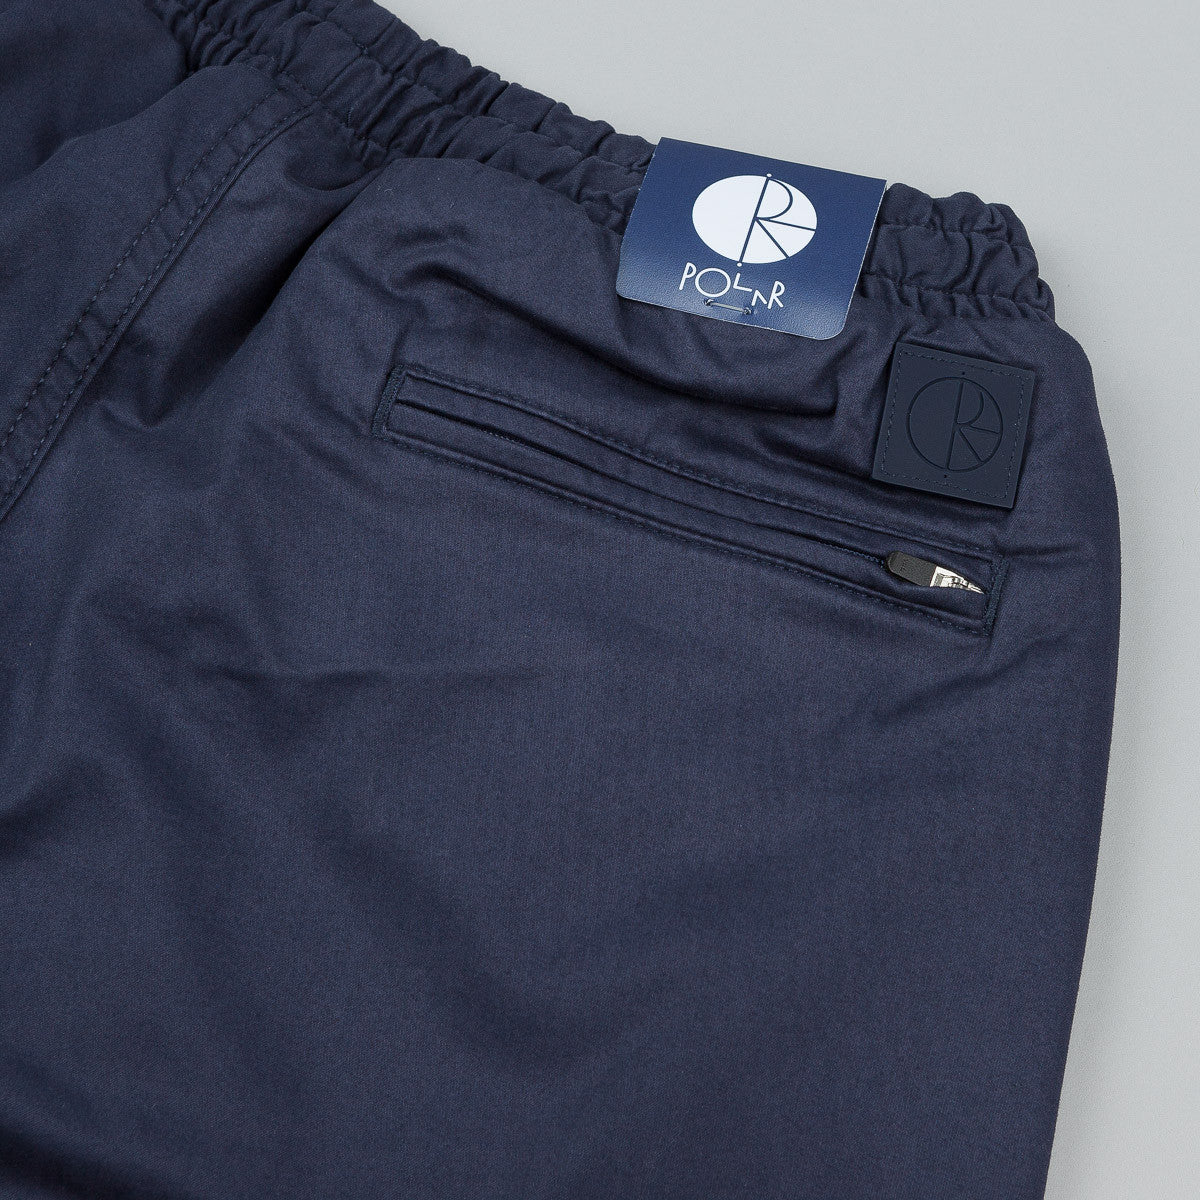 Polar Sweatpant Chino - Navy